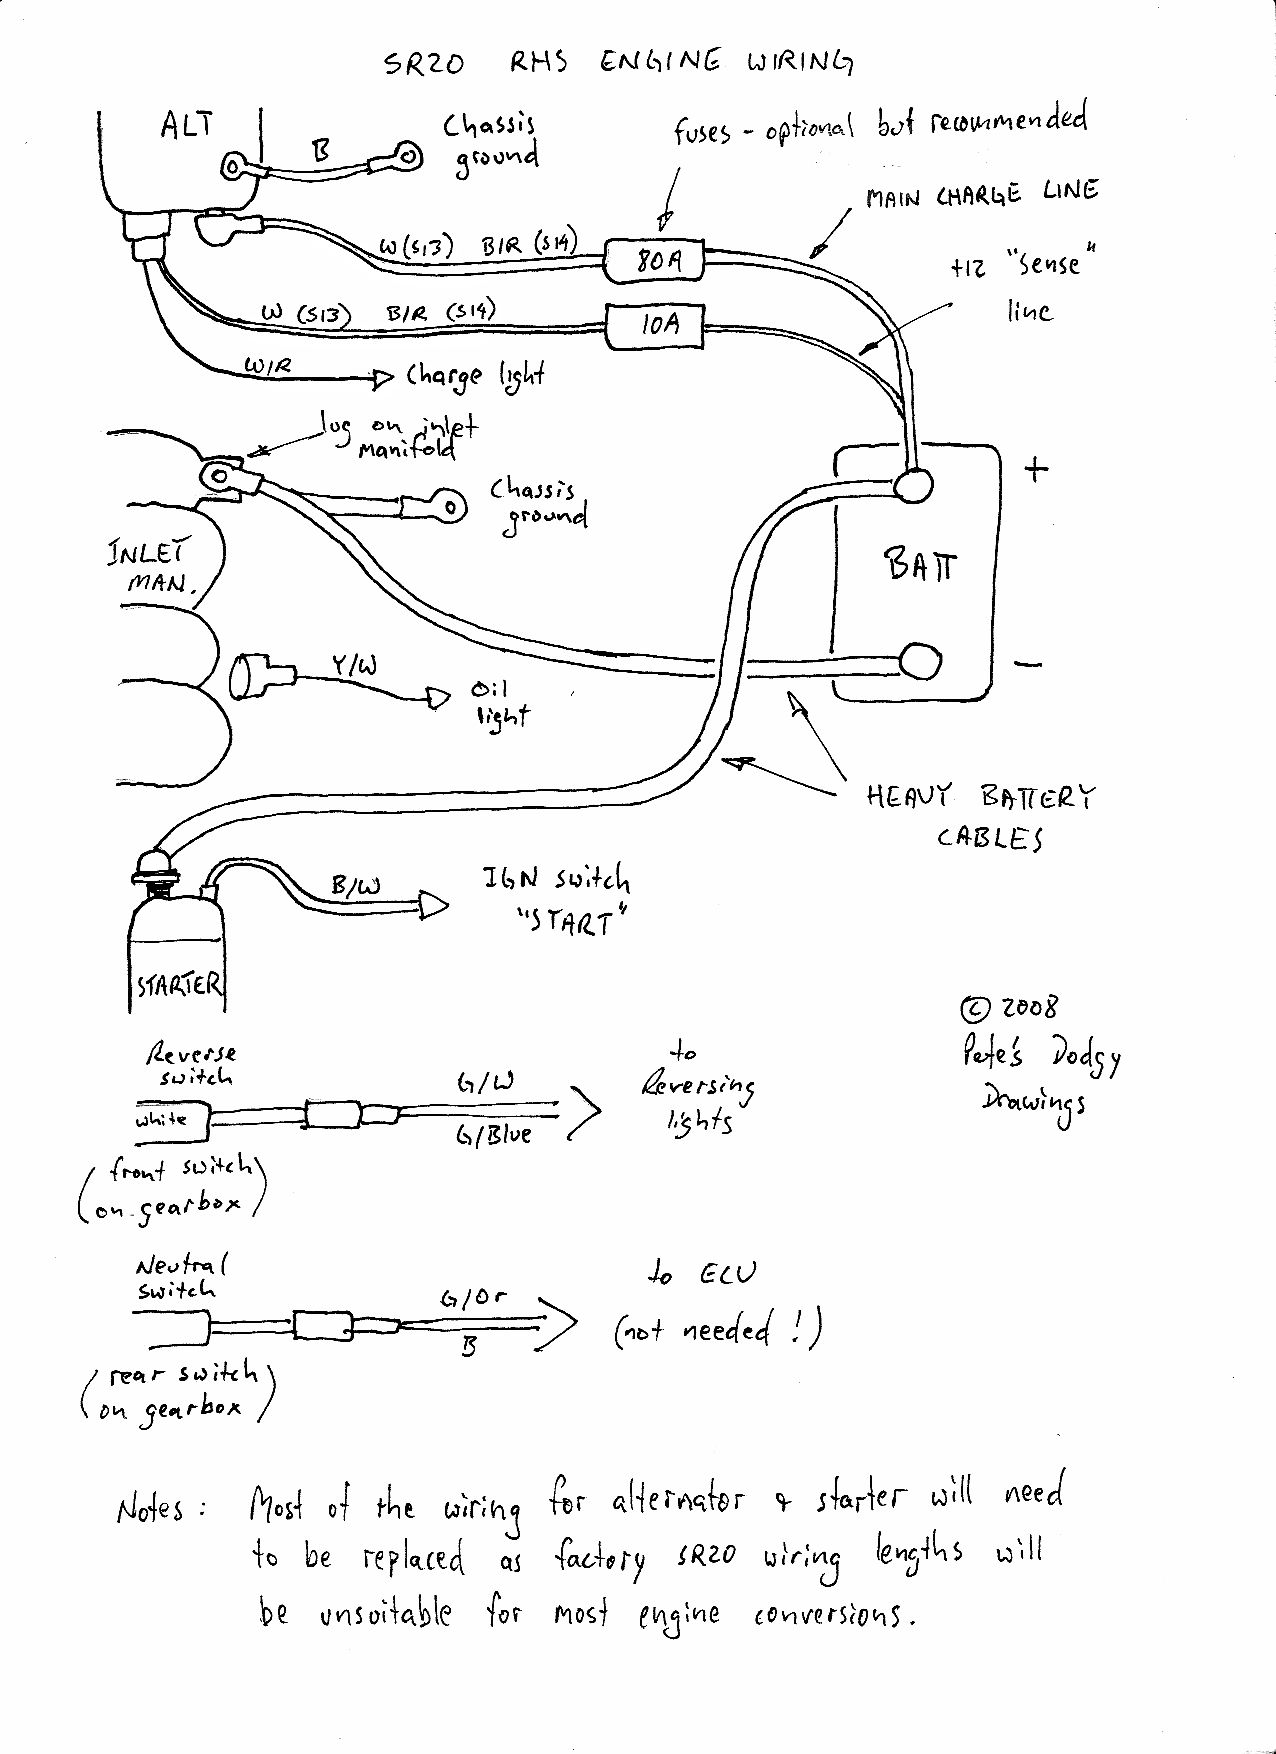 rhs_wiring sr20det wiring into 510 the 510 realm s14 sr20det wiring harness diagram at bakdesigns.co